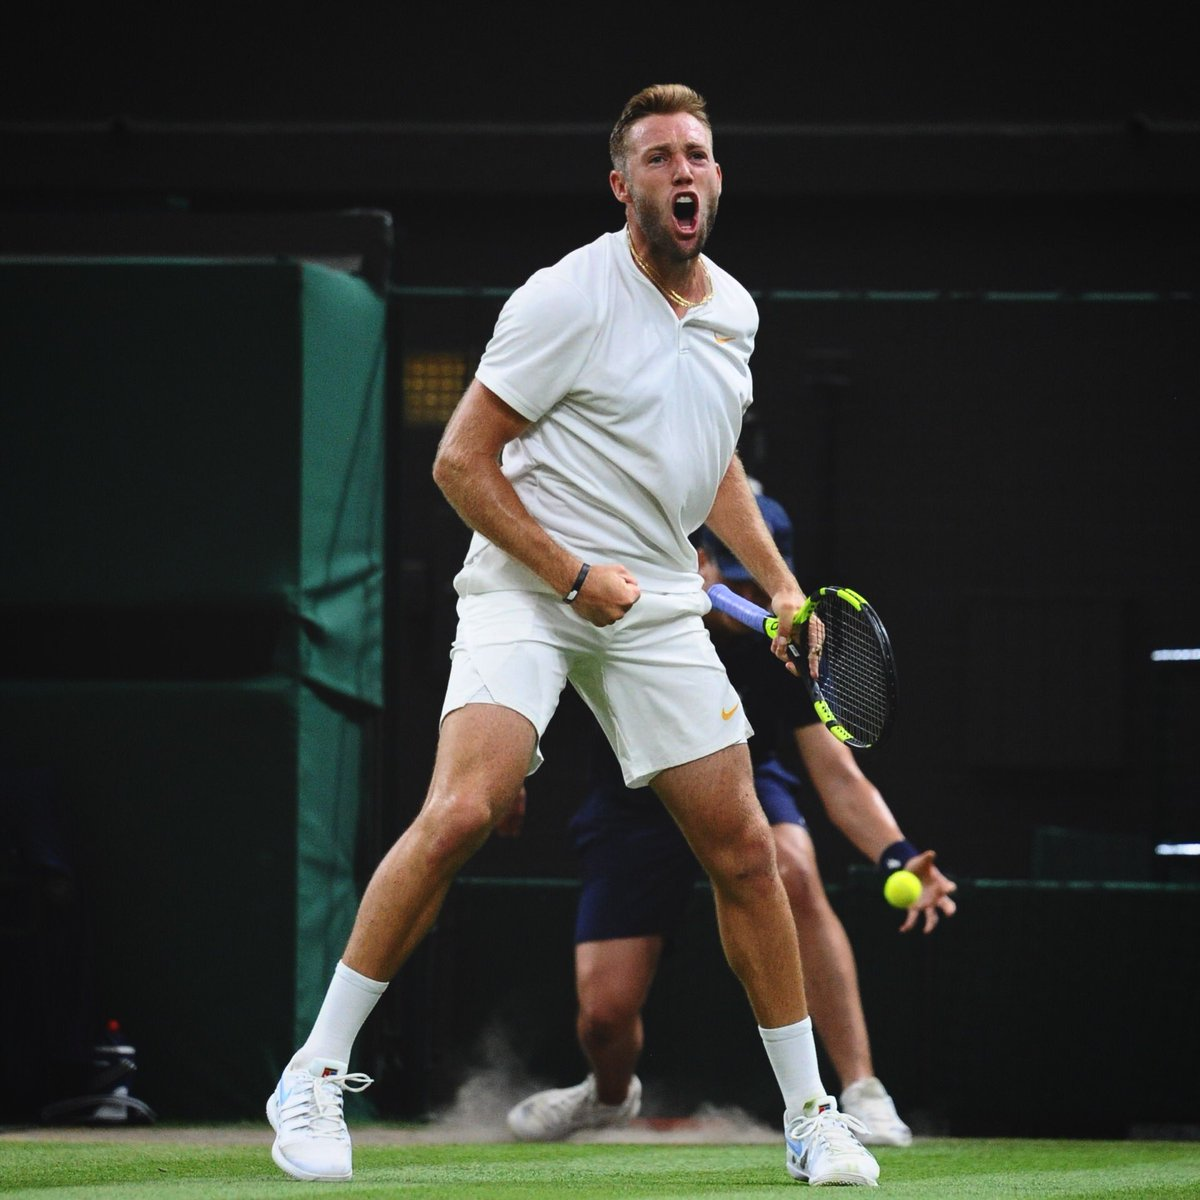 Leaving @wimbledon with hardware. 🏆 @JackSock We Live For This. #PlayToBeWild